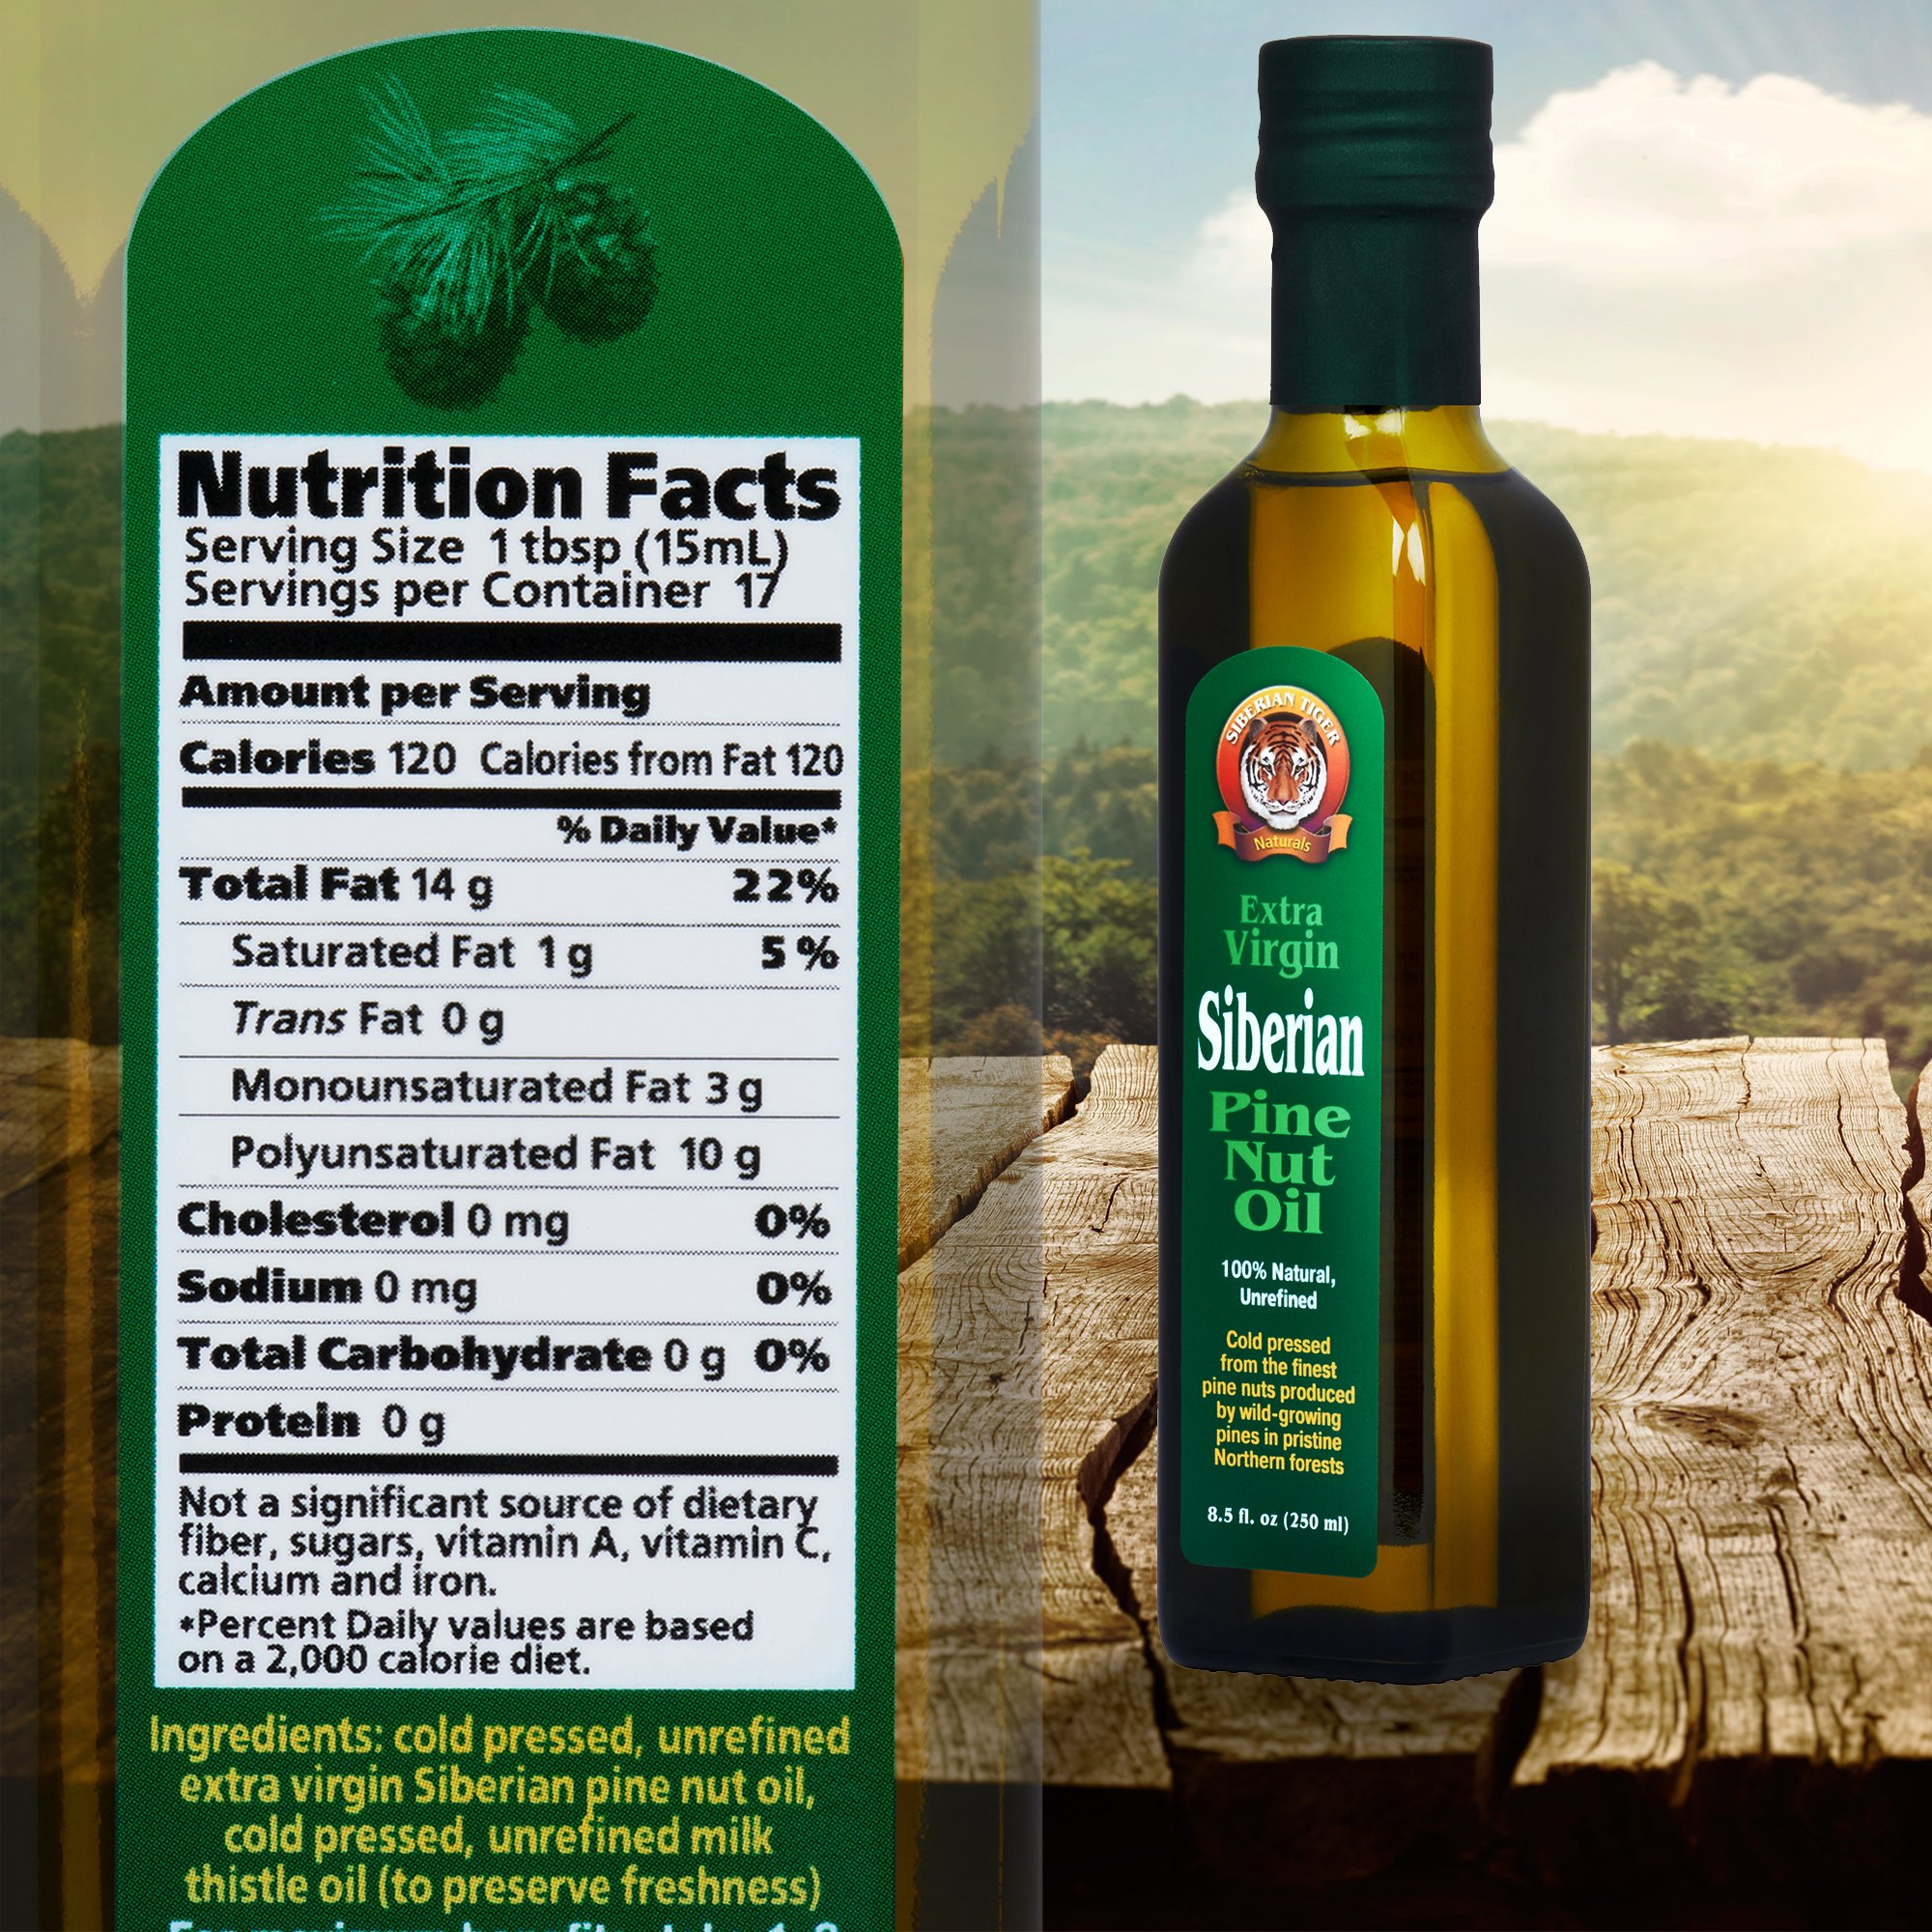 Extra Virgin Siberian Pine Nut Oil, 8.5 oz. Bottle - Premium Quality, Unrefined, 100% Natural - Benefits Overall Health & Aids Gastritis, Ulcers, Digestive Issues by Siberian Tiger Naturals (Image #9)